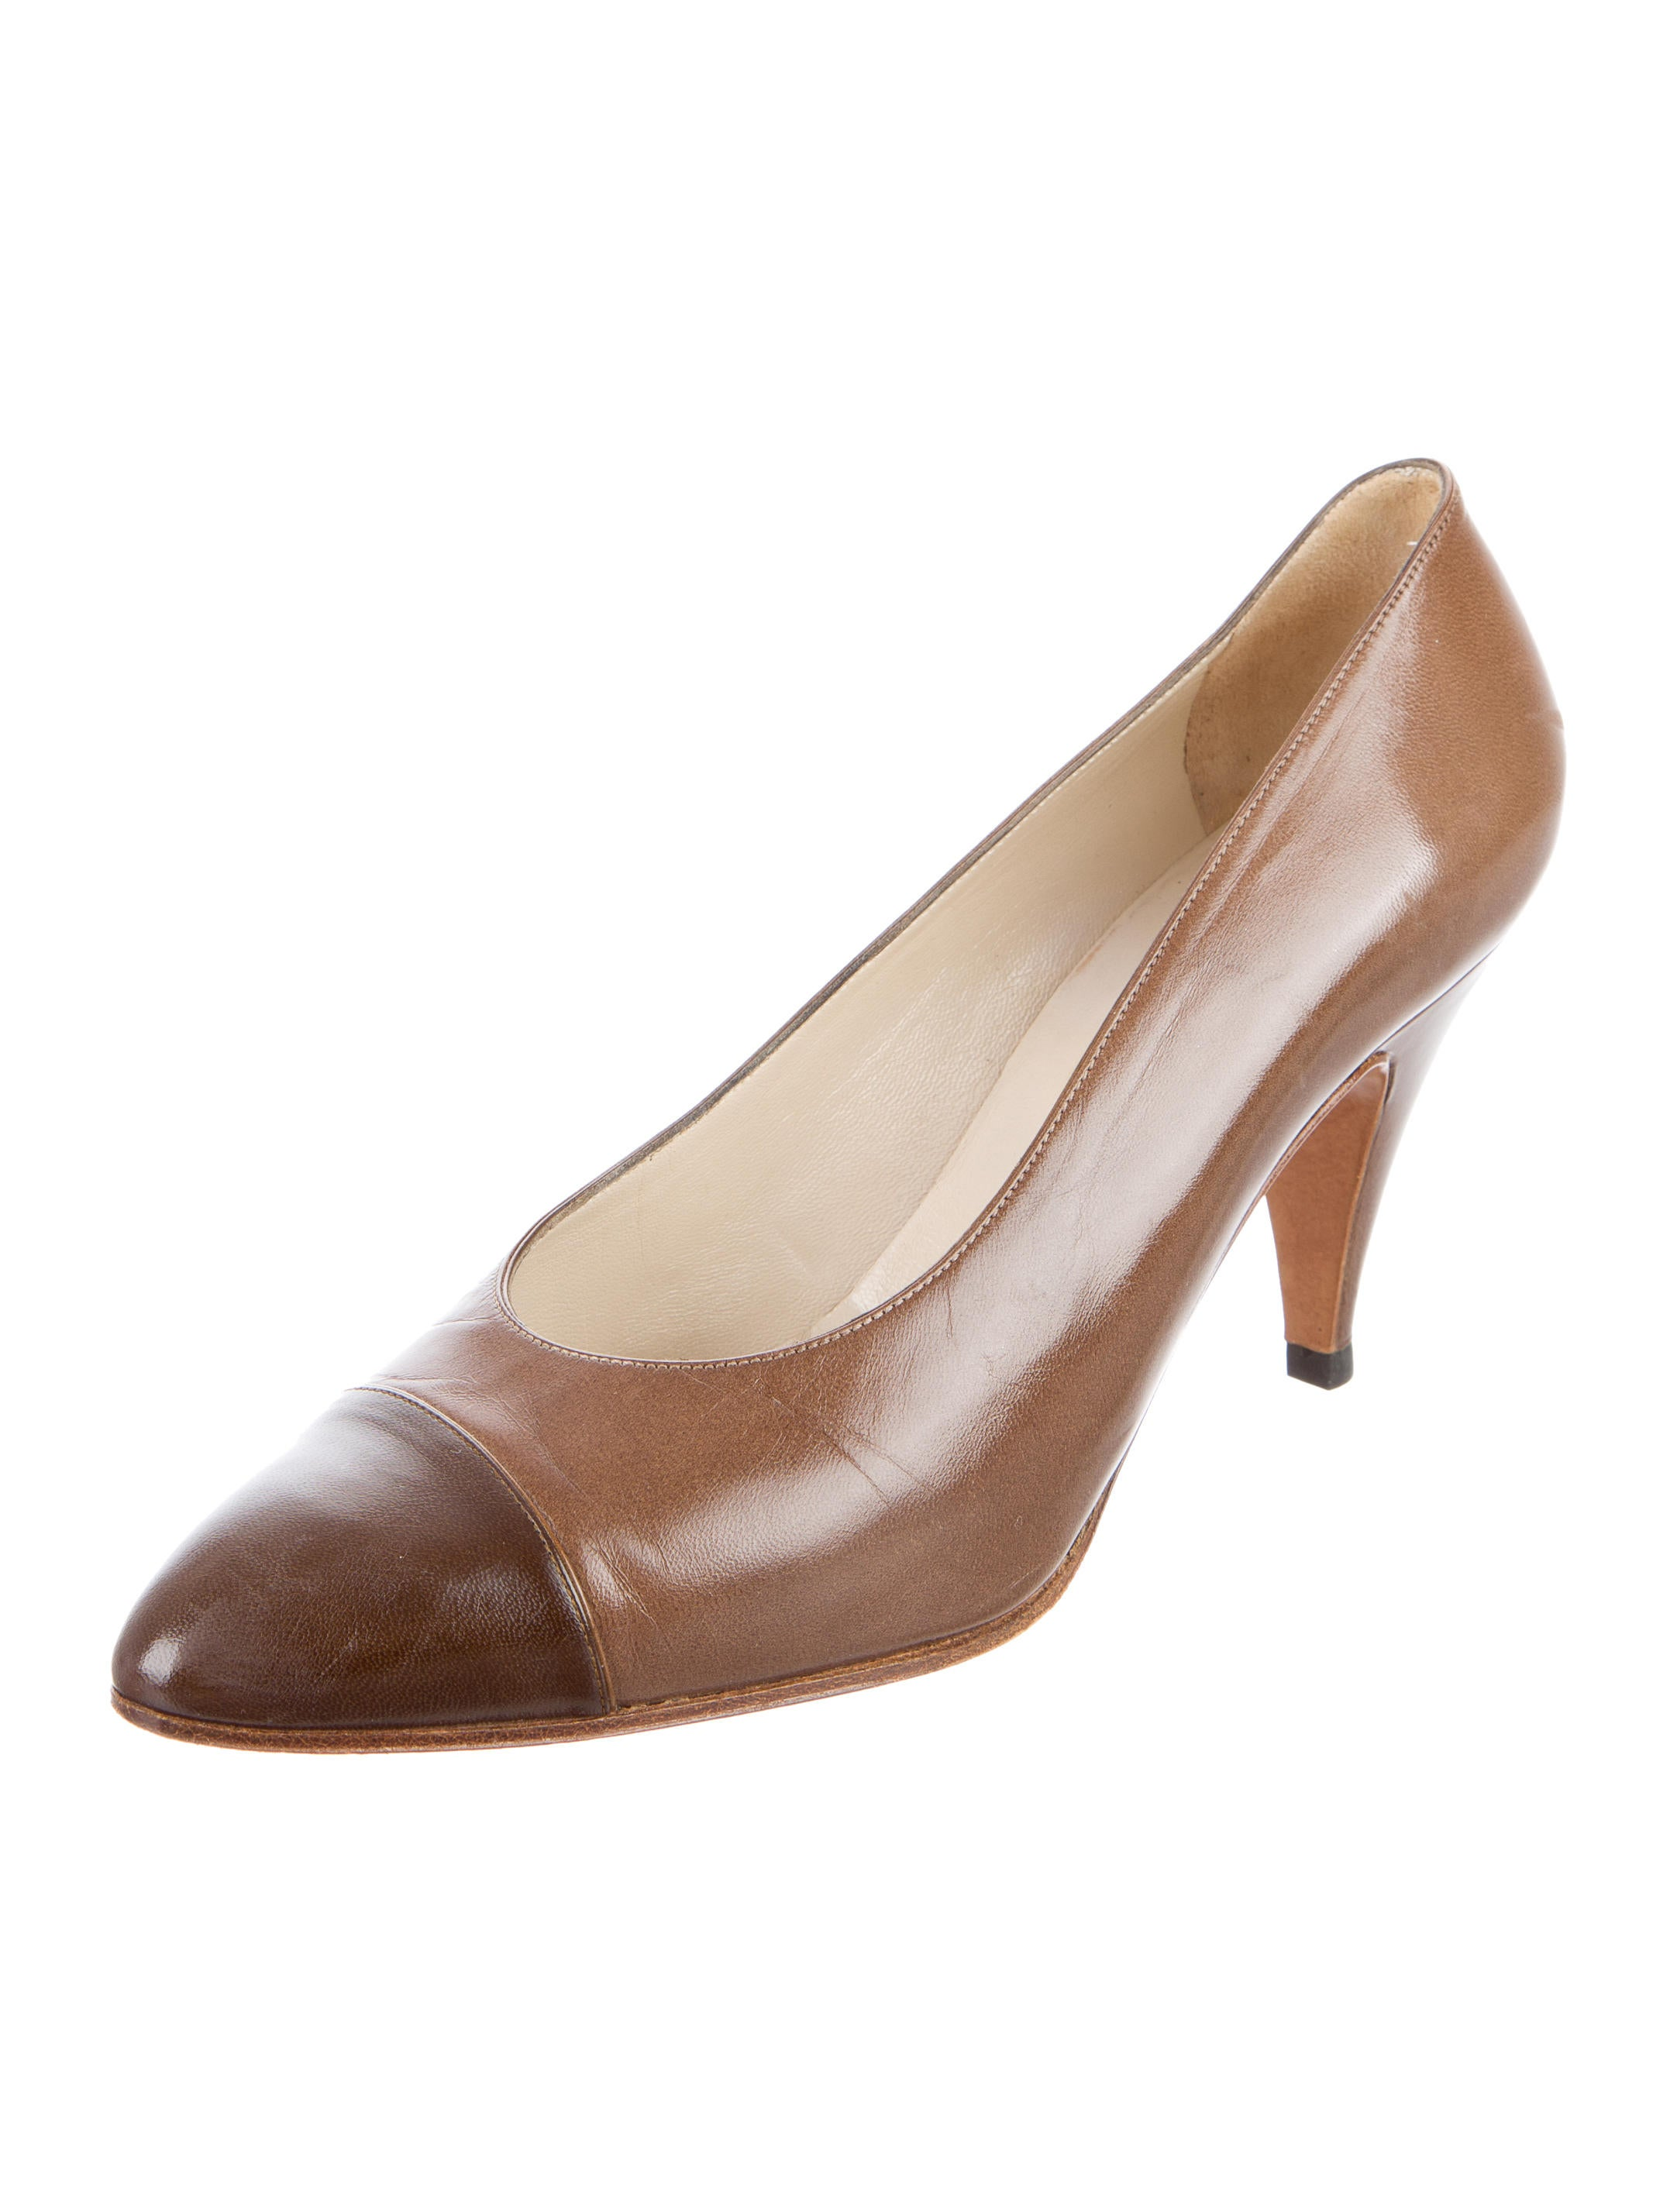 chanel leather pointed toe pumps shoes cha164906 the